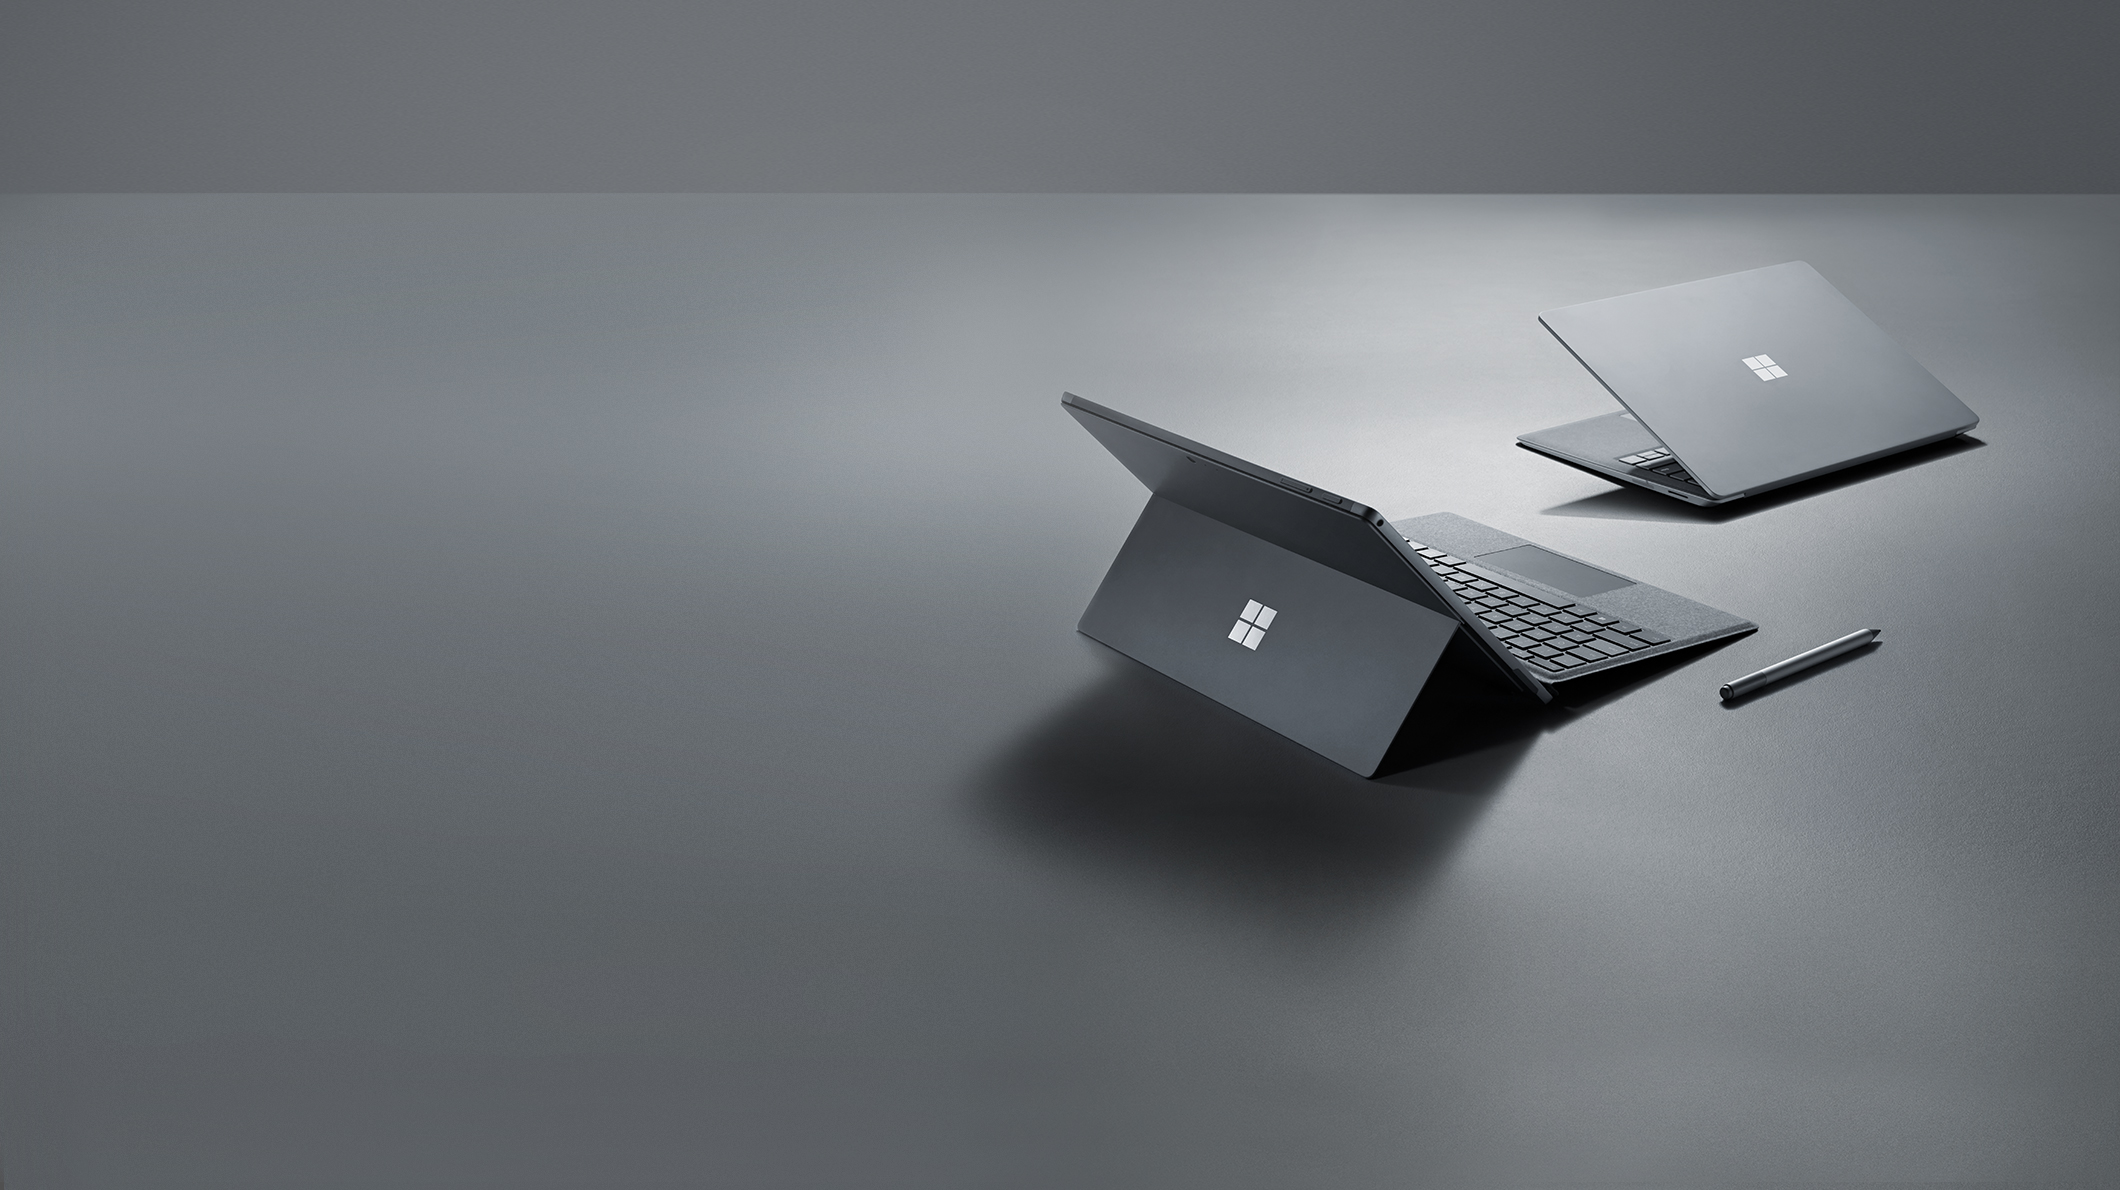 A Surface Laptop 2 and a Surface Pro 6 on a desk